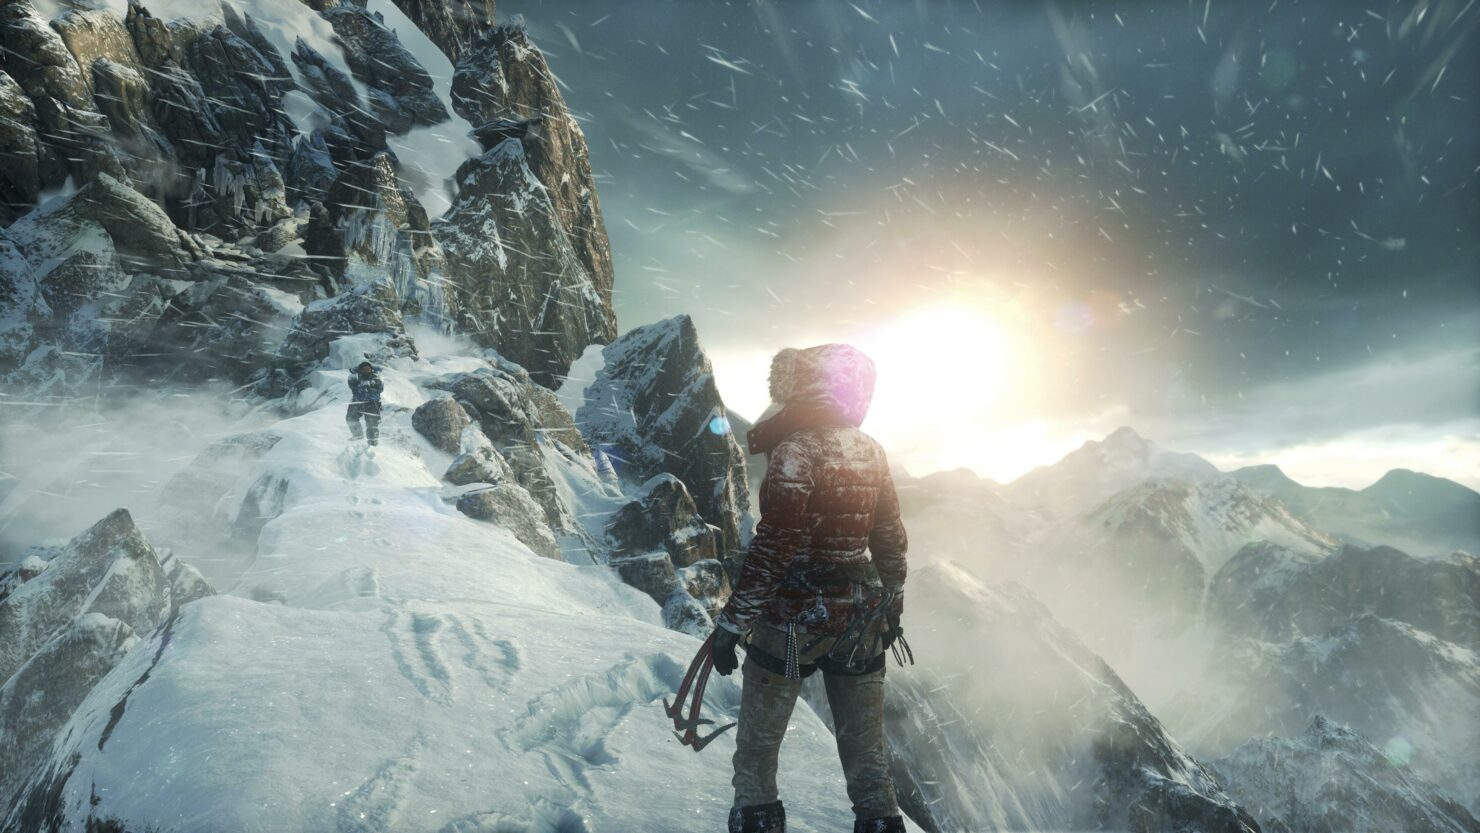 rise-of-the-tomb-raider_pc_4k_pcmr_5